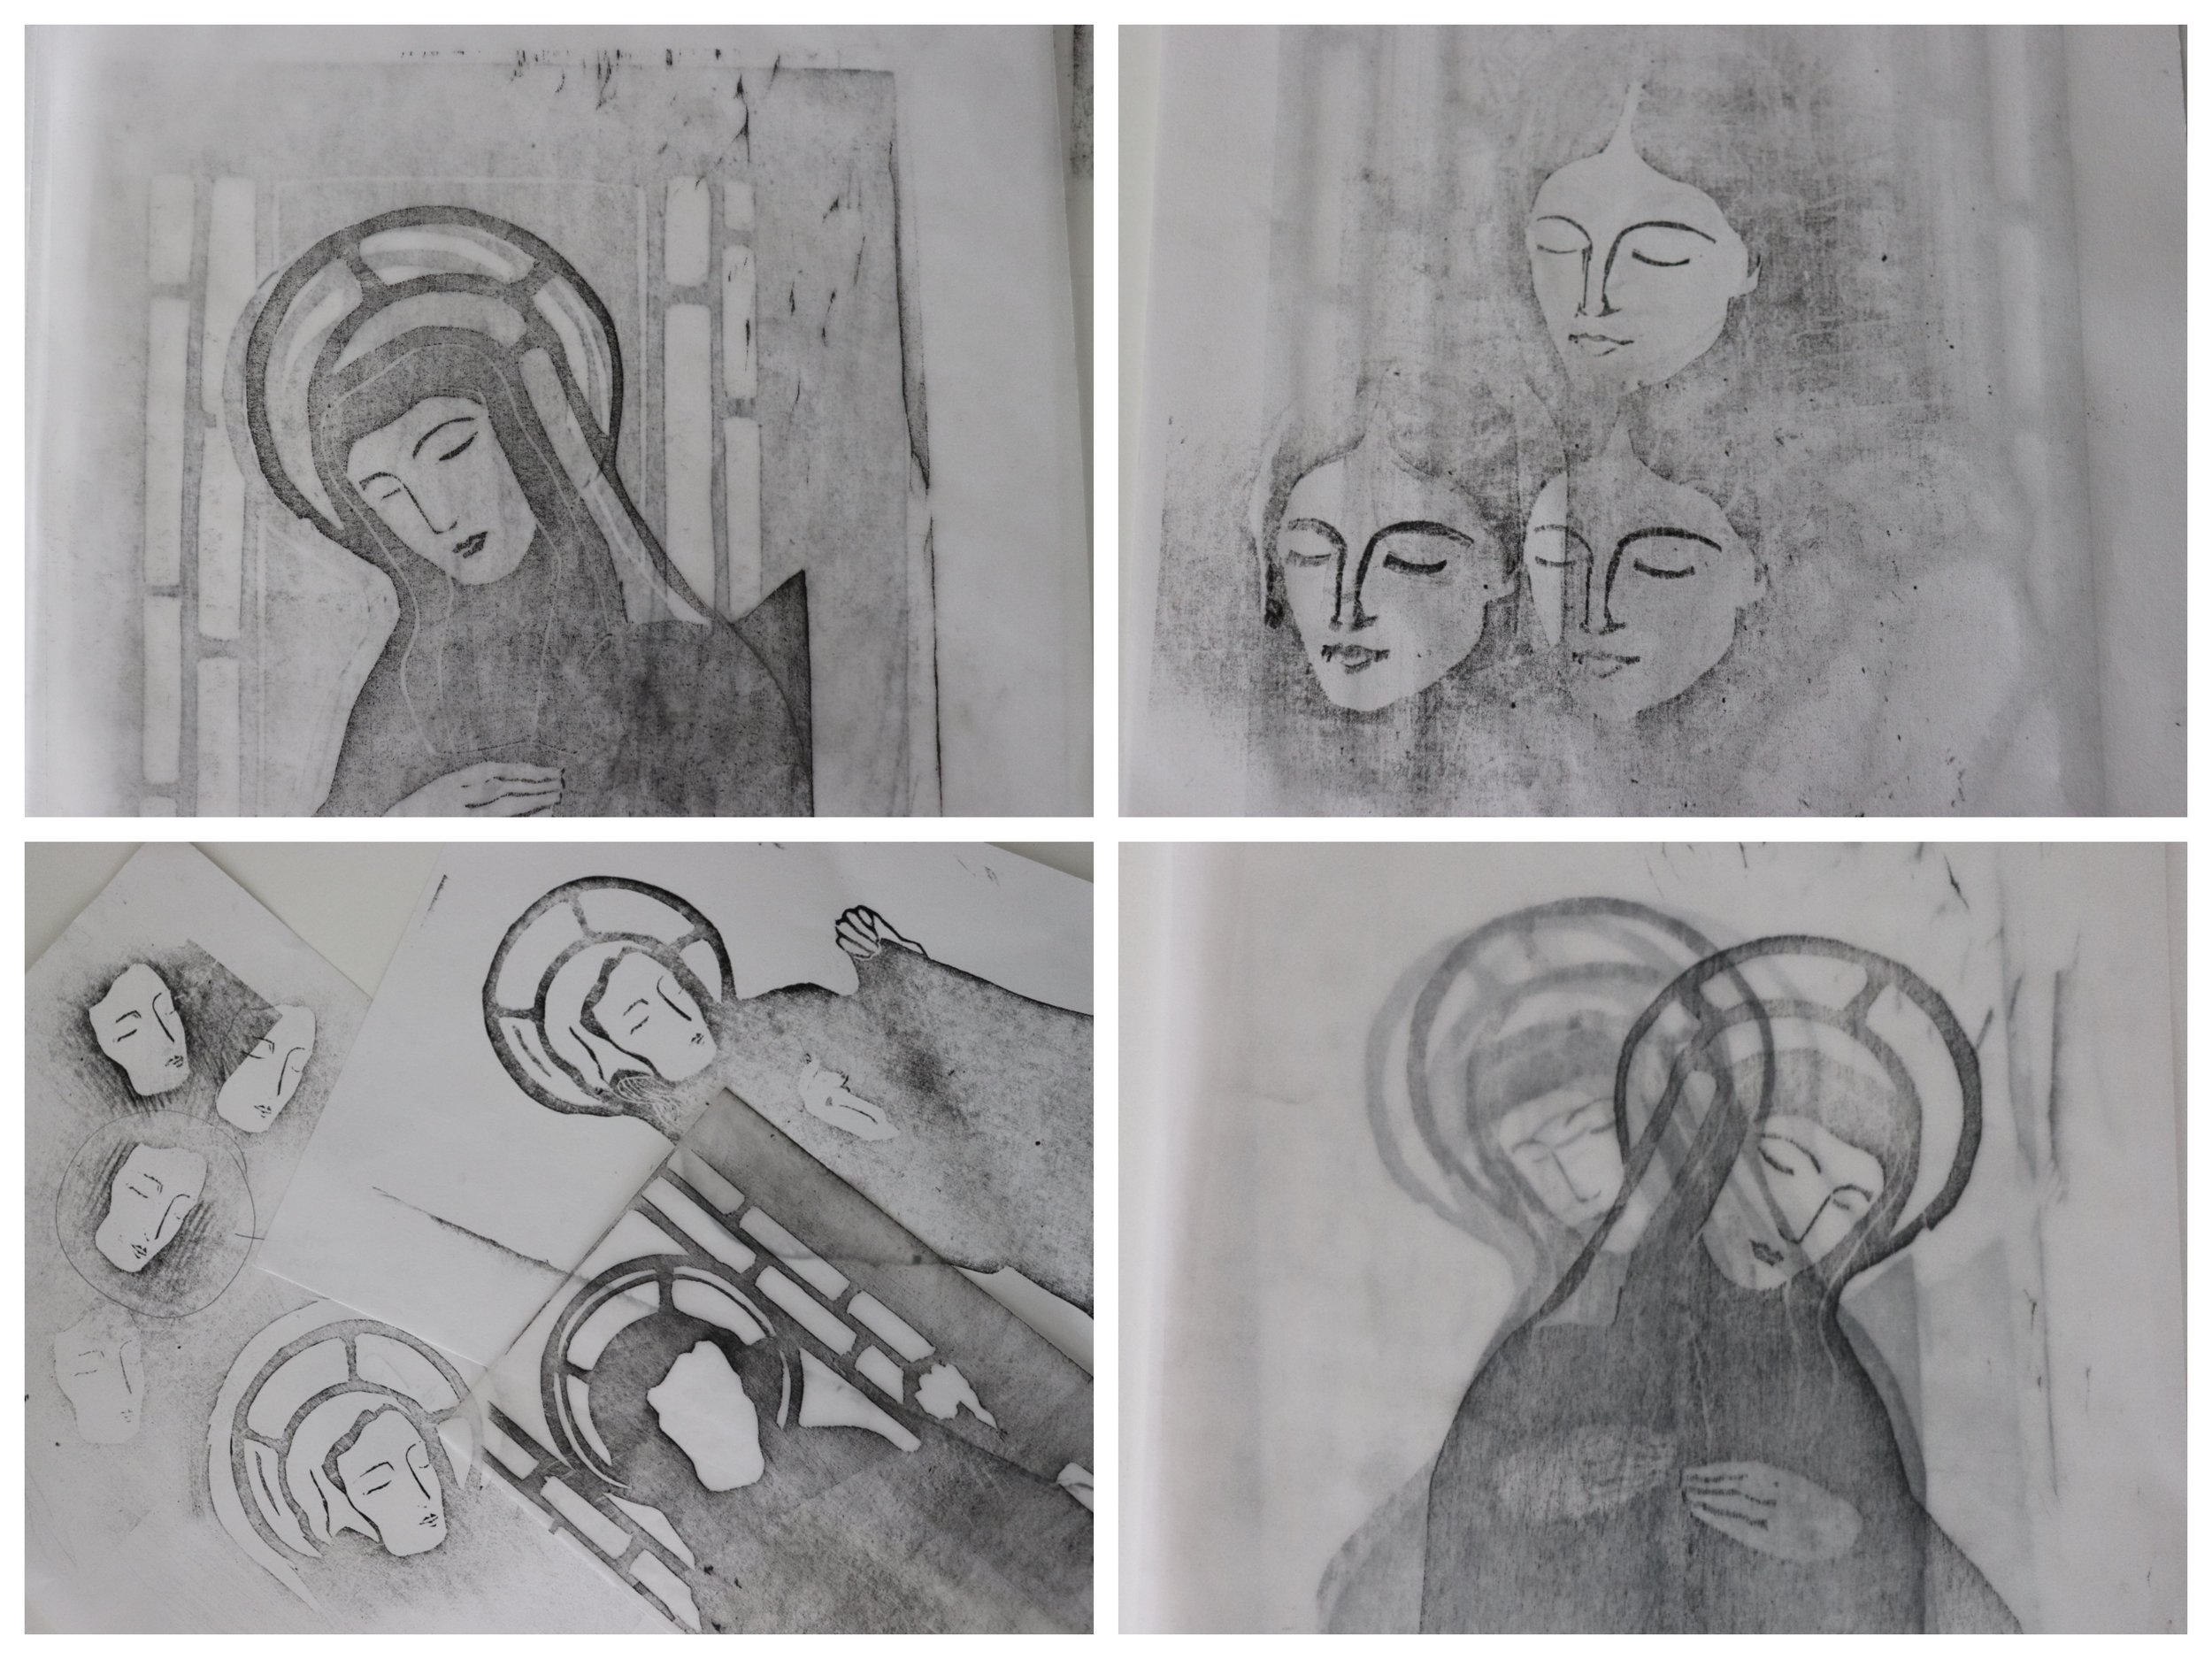 I love the different processes involved in making a print. Here are some pics of rubbings I made with carbon paper to check the images after carving the keyblocks for In 'Praise of Saints.' Top Left: Saint Catherine of Siena. Top Right: Florence Nightingale. Bottom Left: St Veronica. Bottom Right: Saint Catherine of Siena.